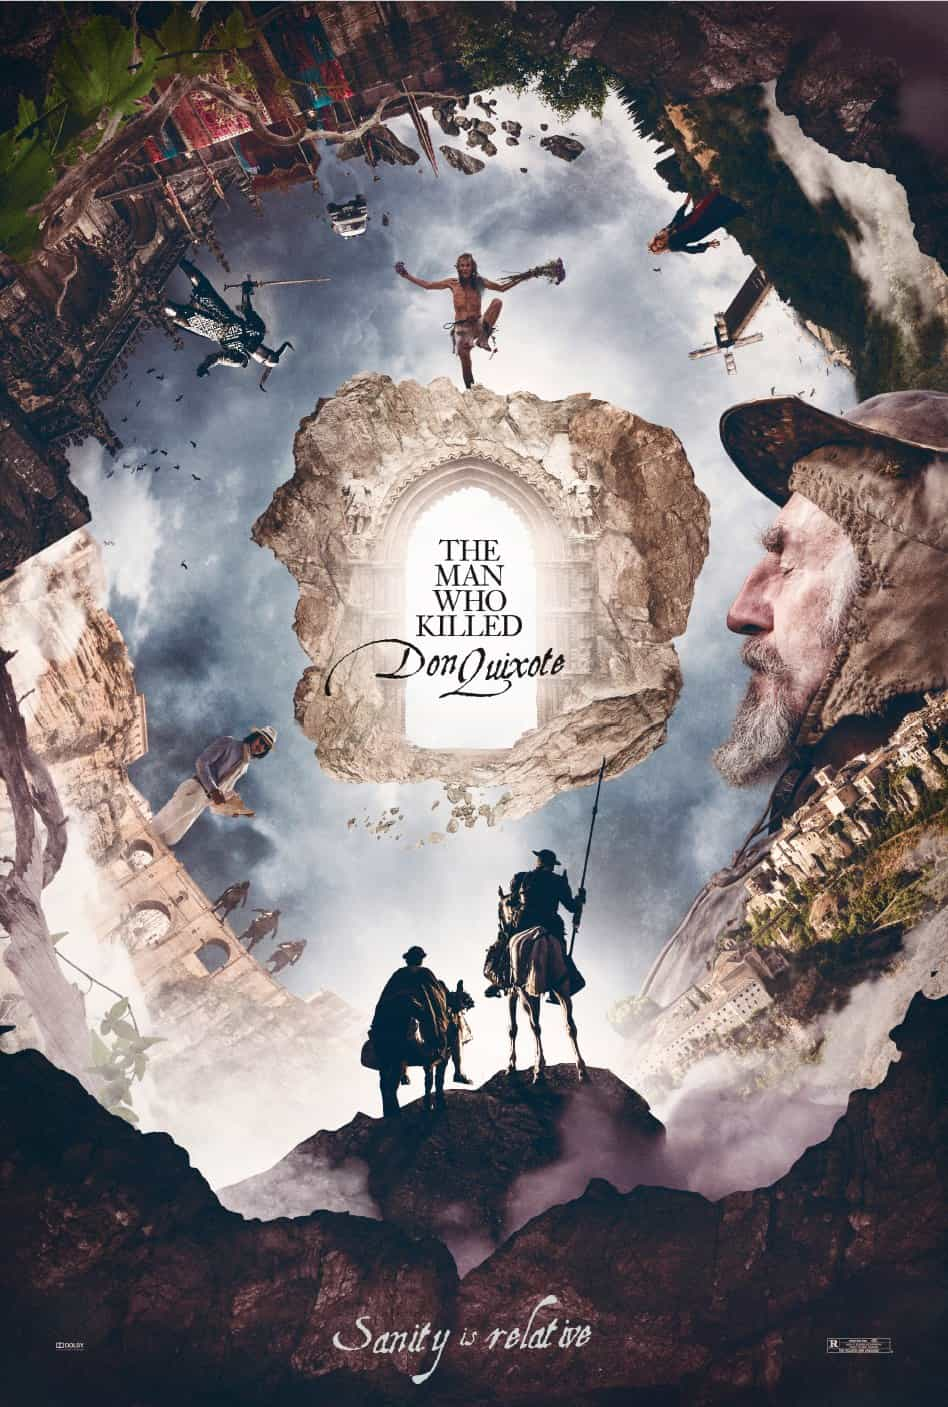 The Man Who Killed Don Quixote - Movie poster vote by Terry Gilliam on Facebook